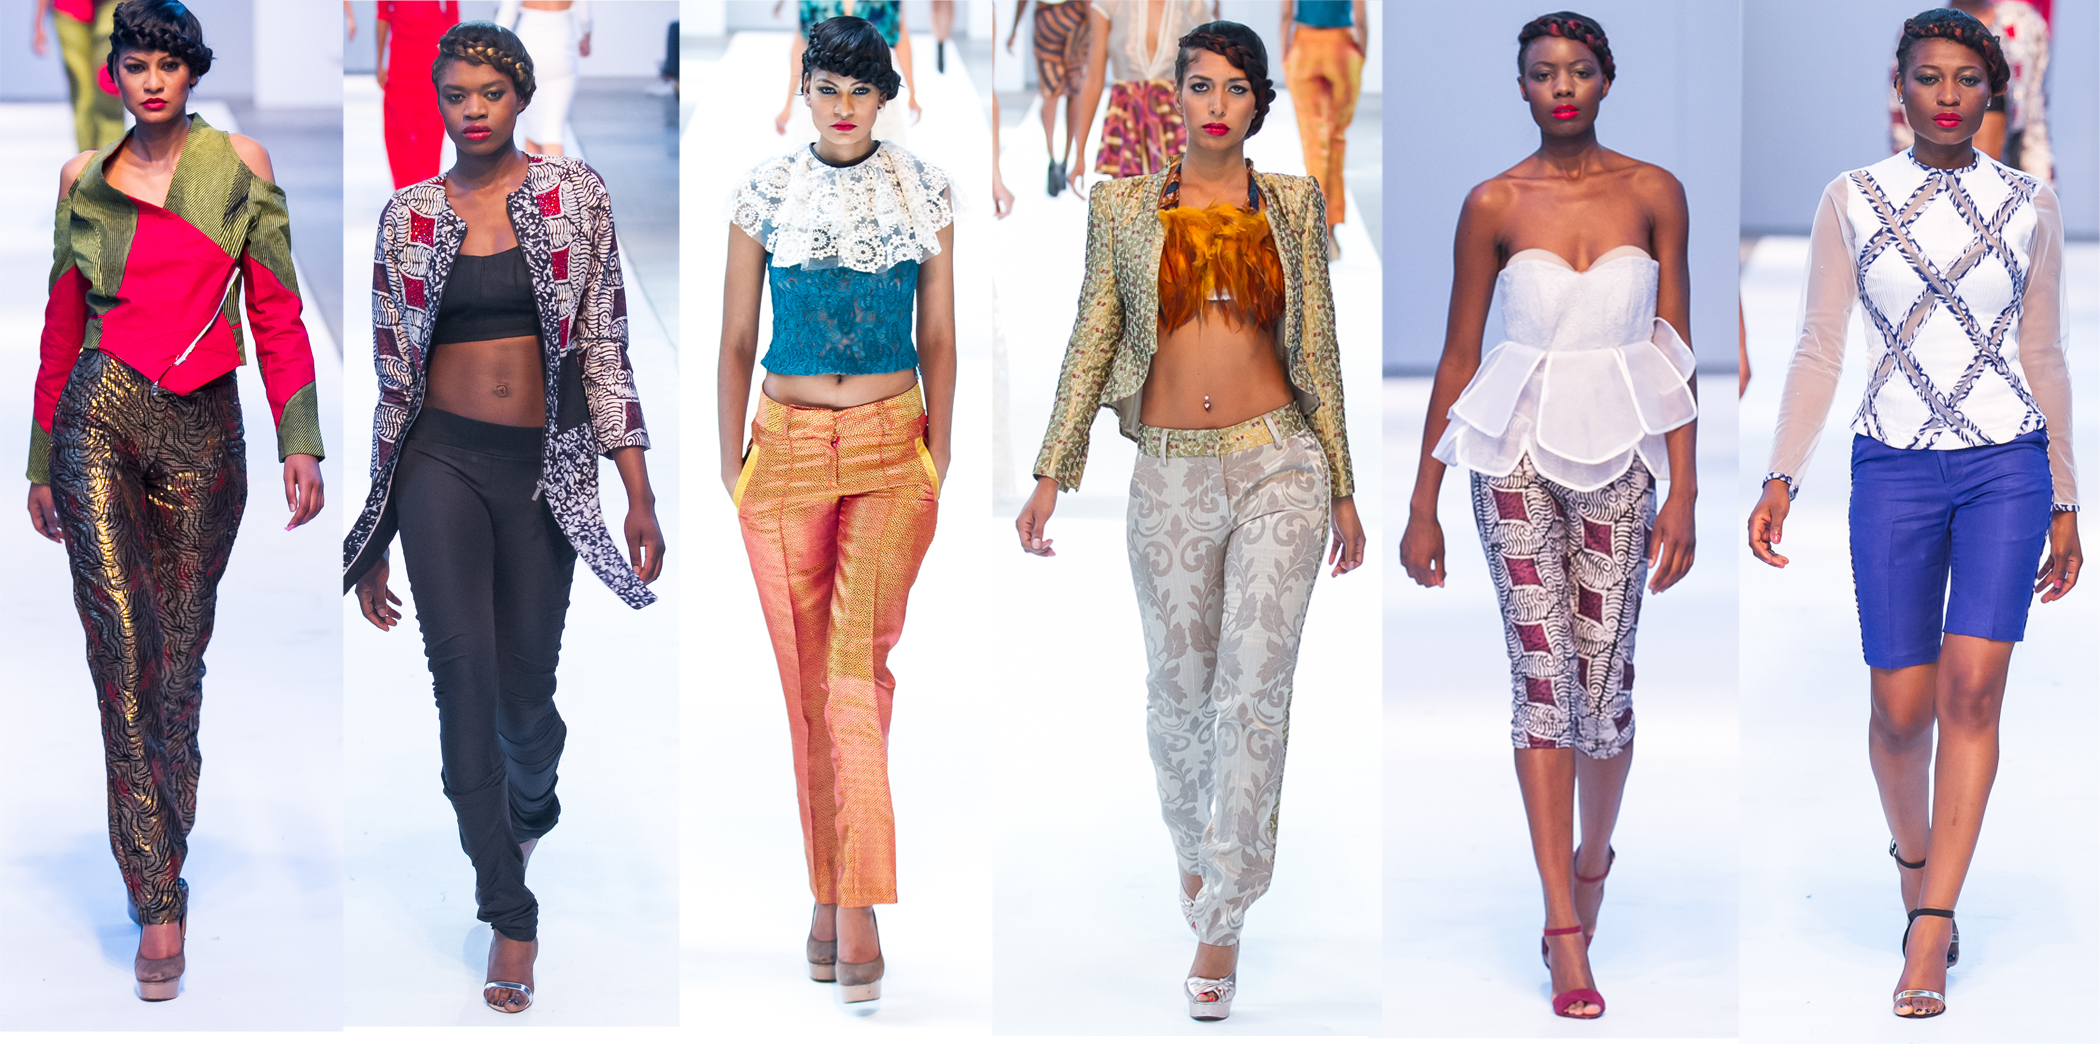 Malawi Fashion Designers